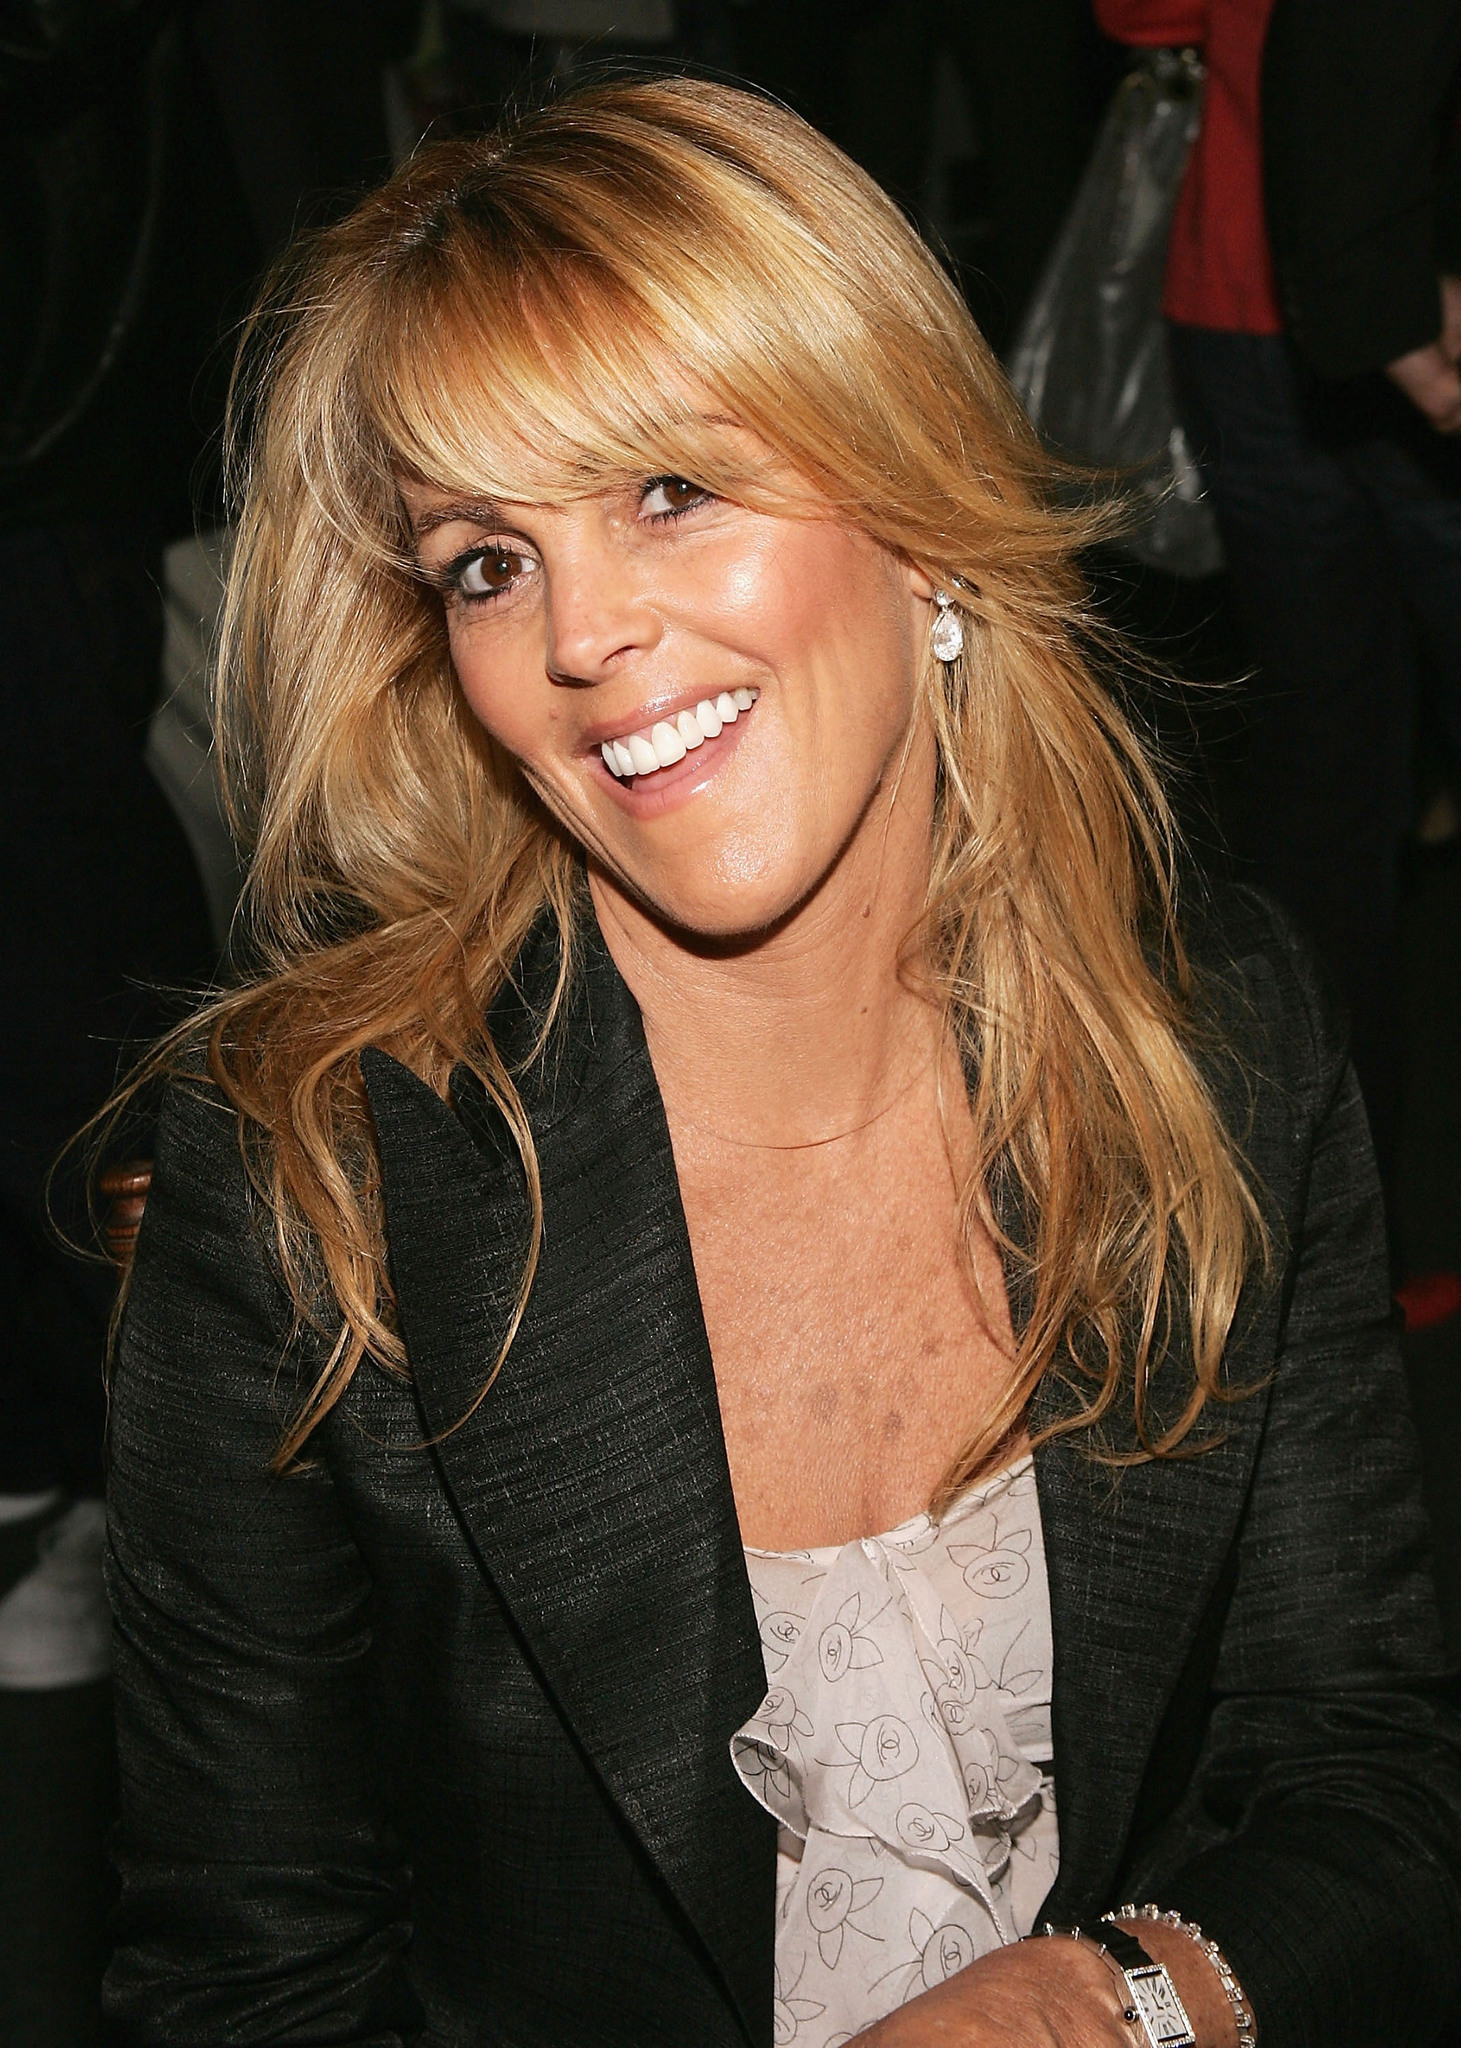 Dina lohan nude photos think